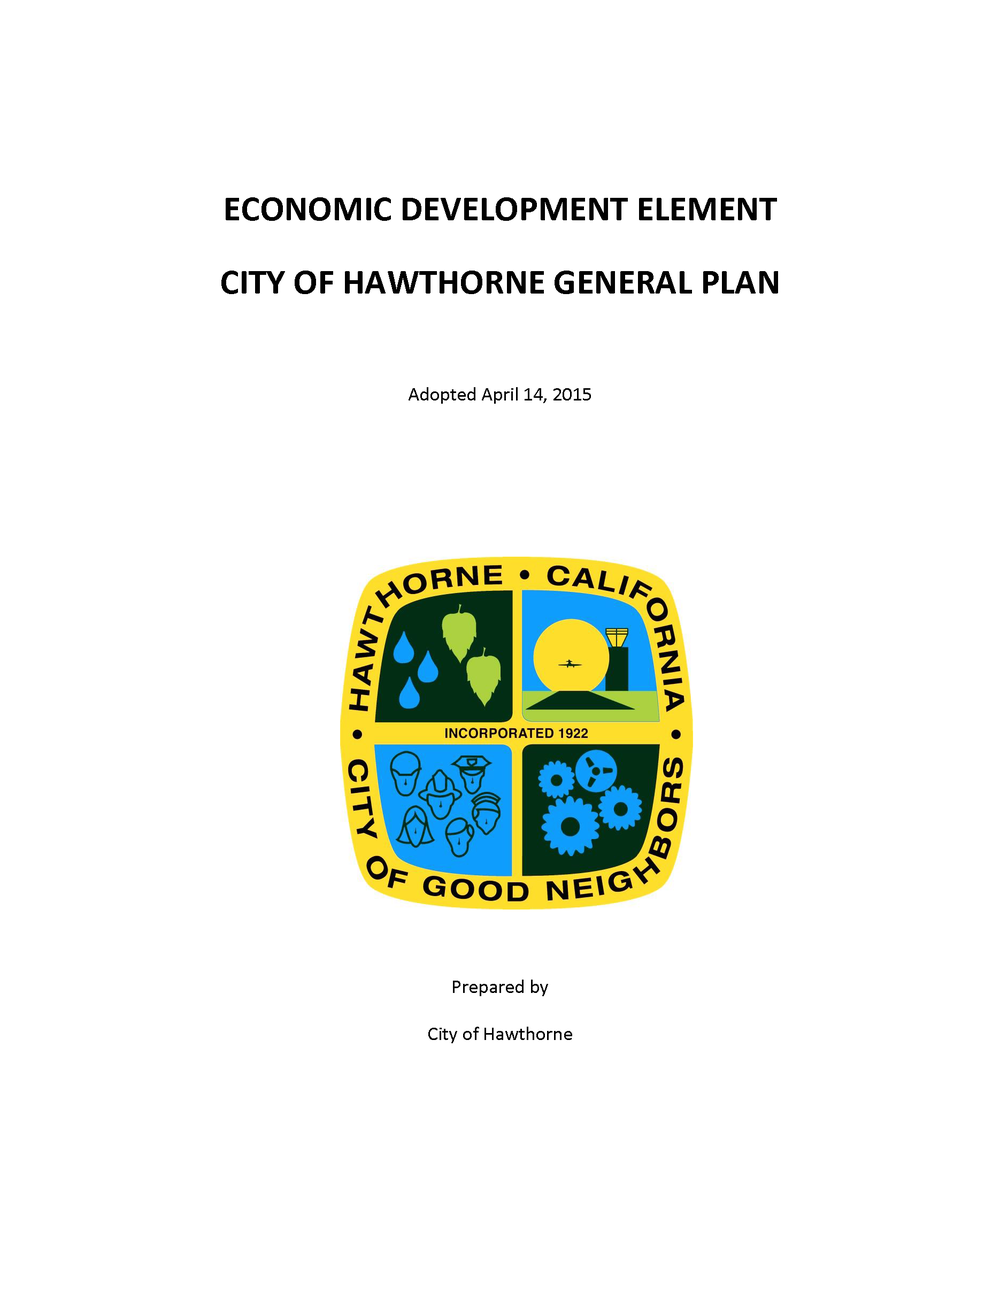 Economic Development Element General Plan